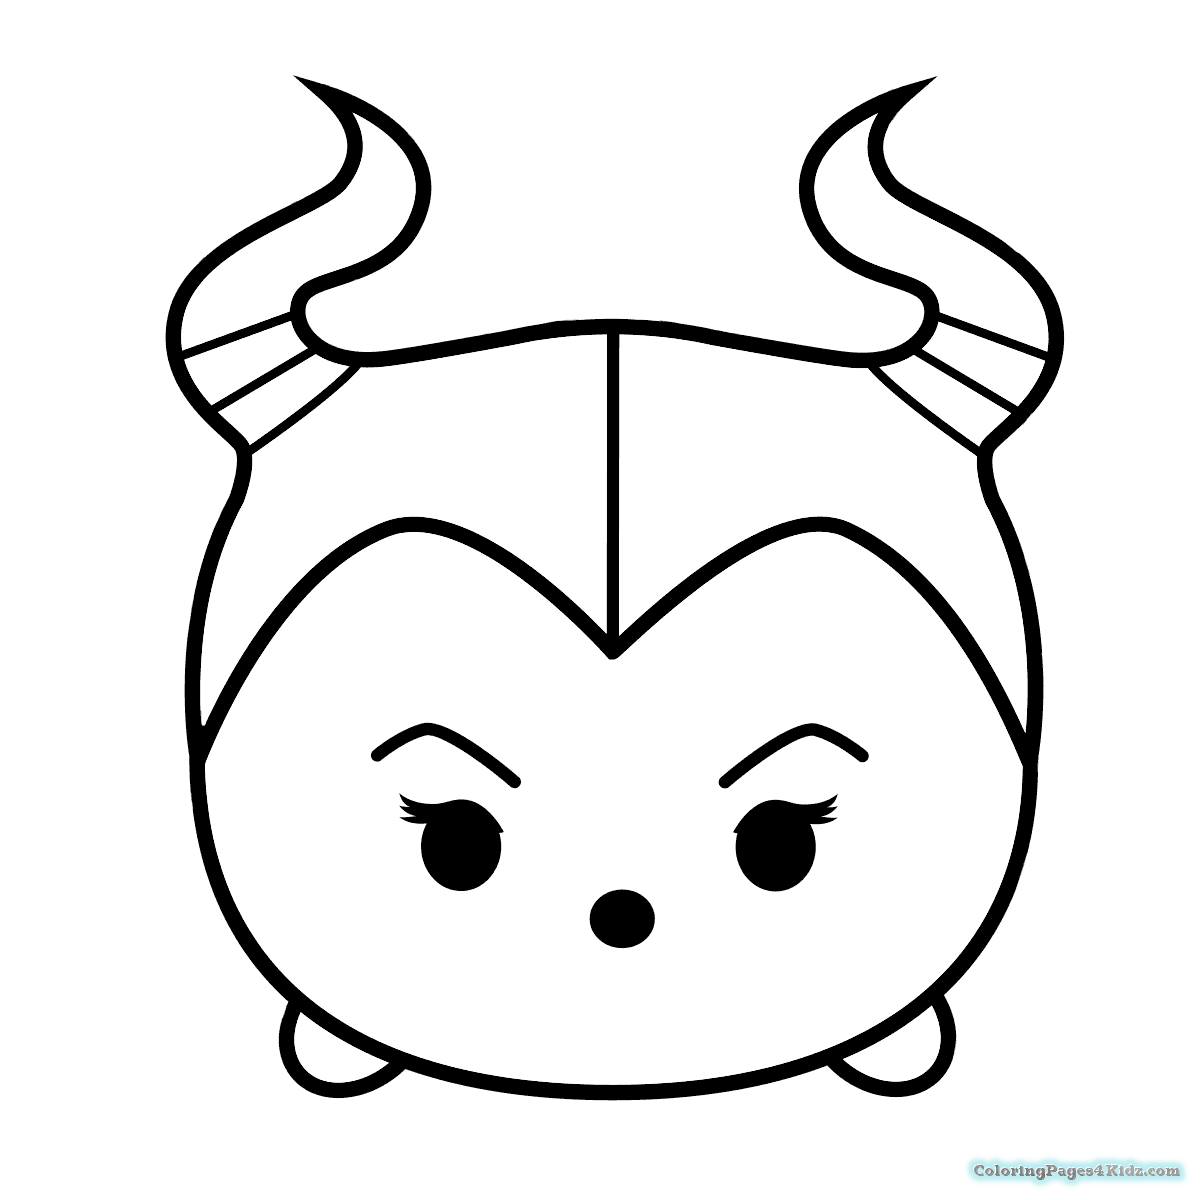 1200x1200 Disney Tsum Tsum Mickey Coloring Pages Black And White Coloring